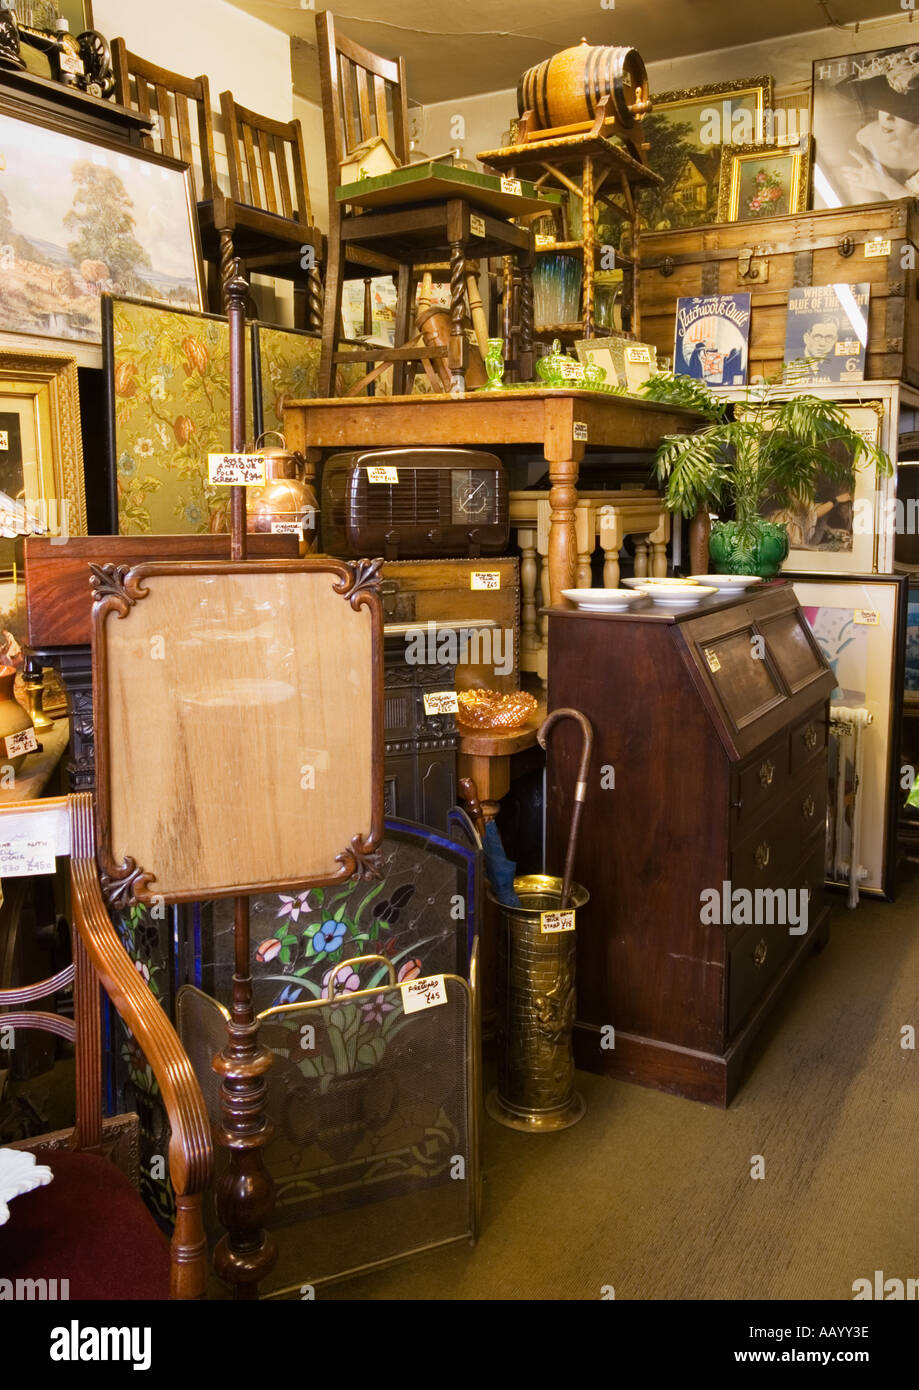 Furniture in an antique store interior England UK - Stock Image